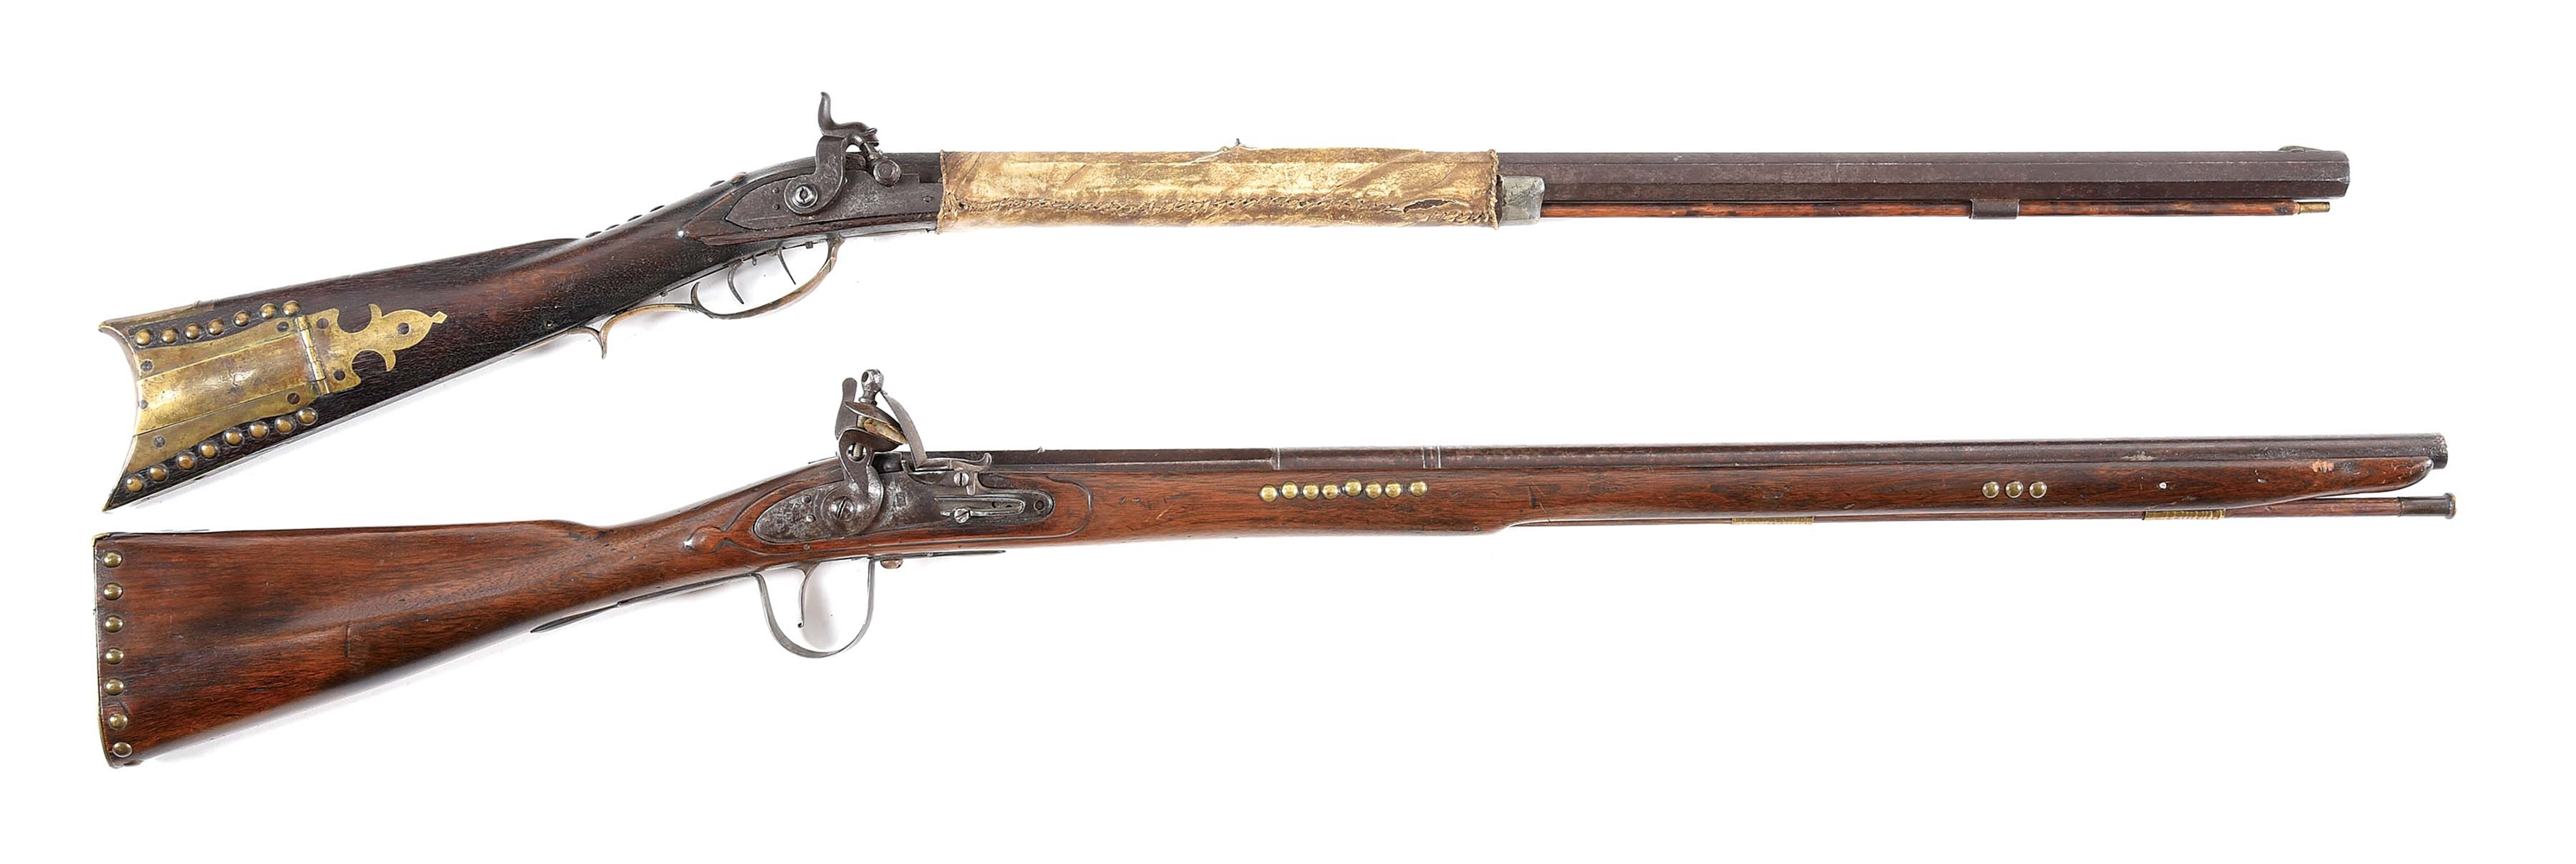 (A) LOT OF 2: PLAINS RIFLE AND PARKER FIELD RIFLE.